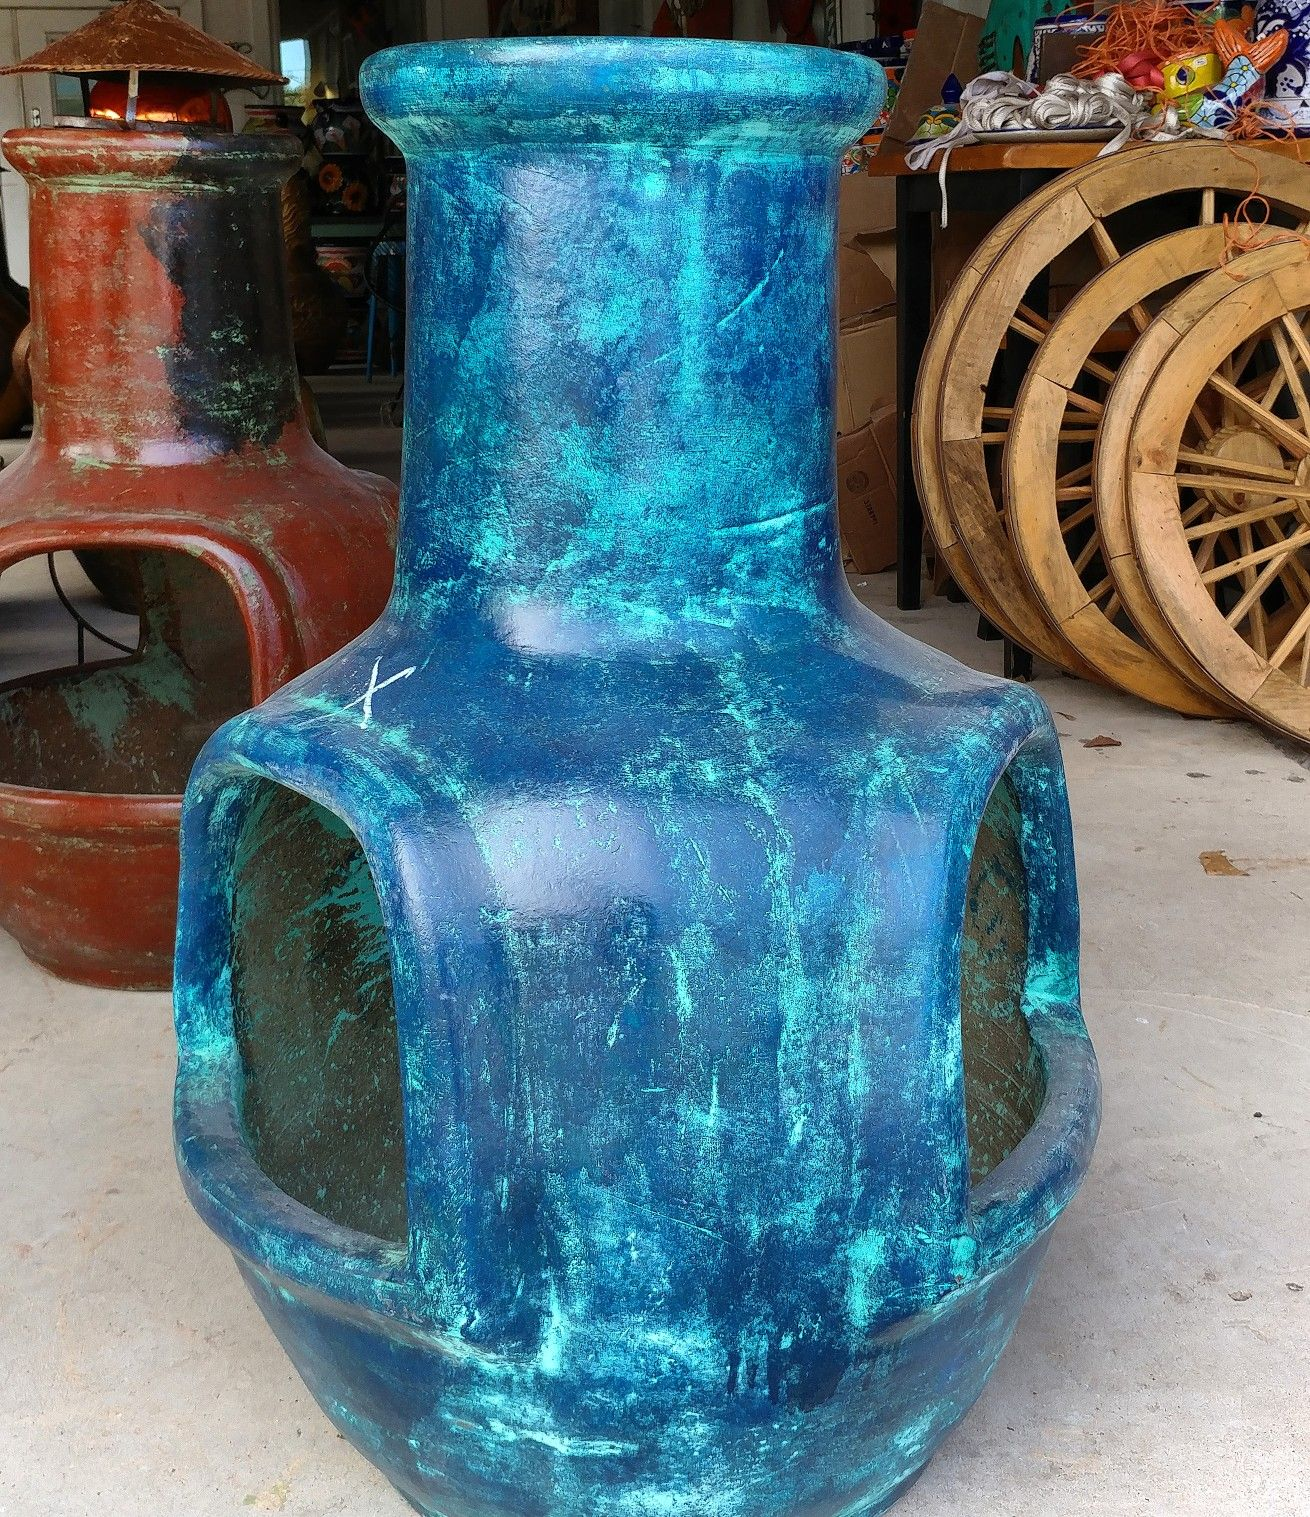 blue fatboy chiminea available at barrio antiguo 725 yale st houston